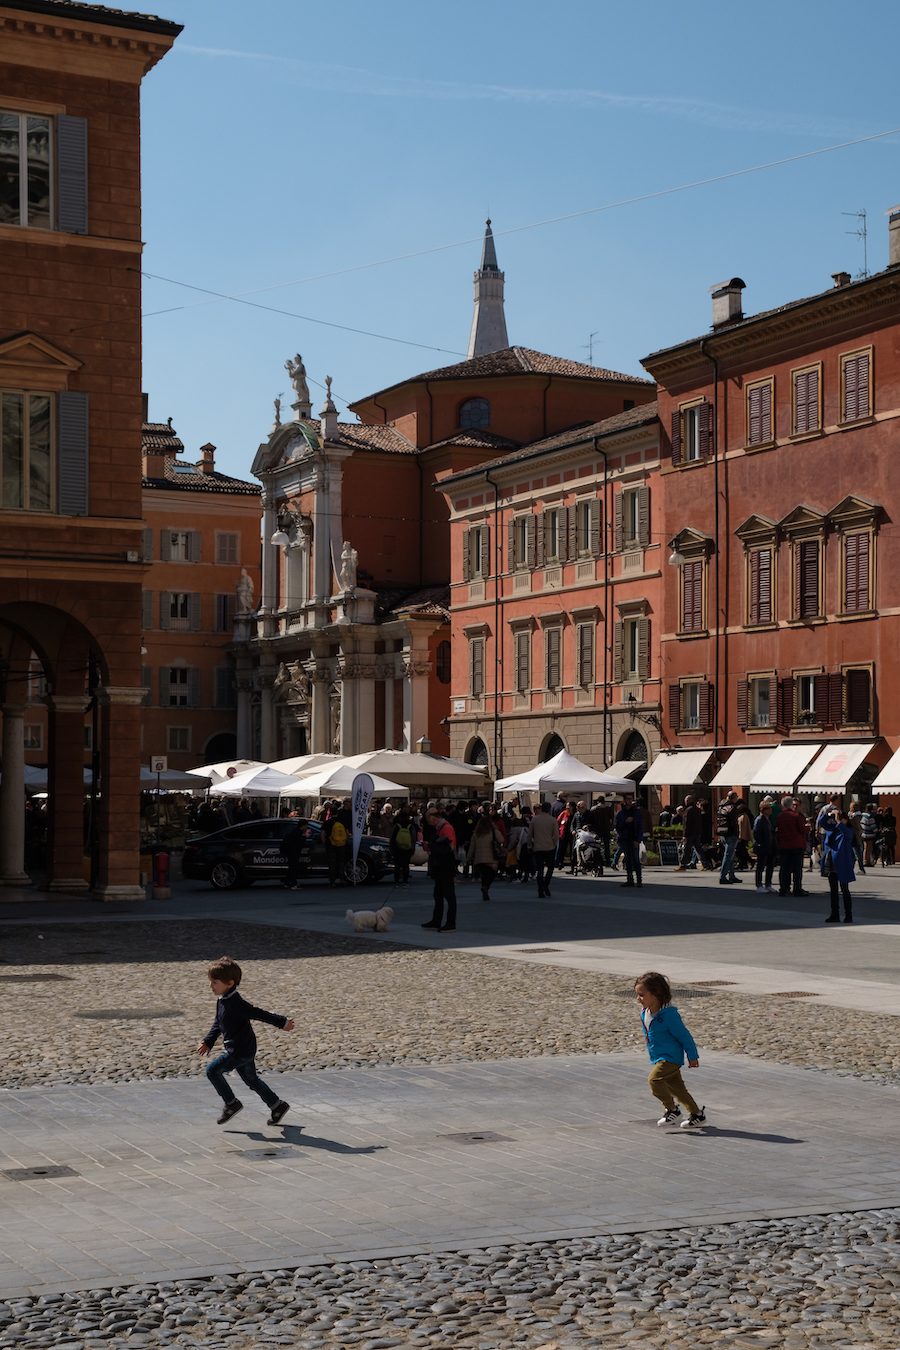 Local life in Piazza Roma, Modena, Italy - by Ben Holbrook from DriftwoodJournals.com